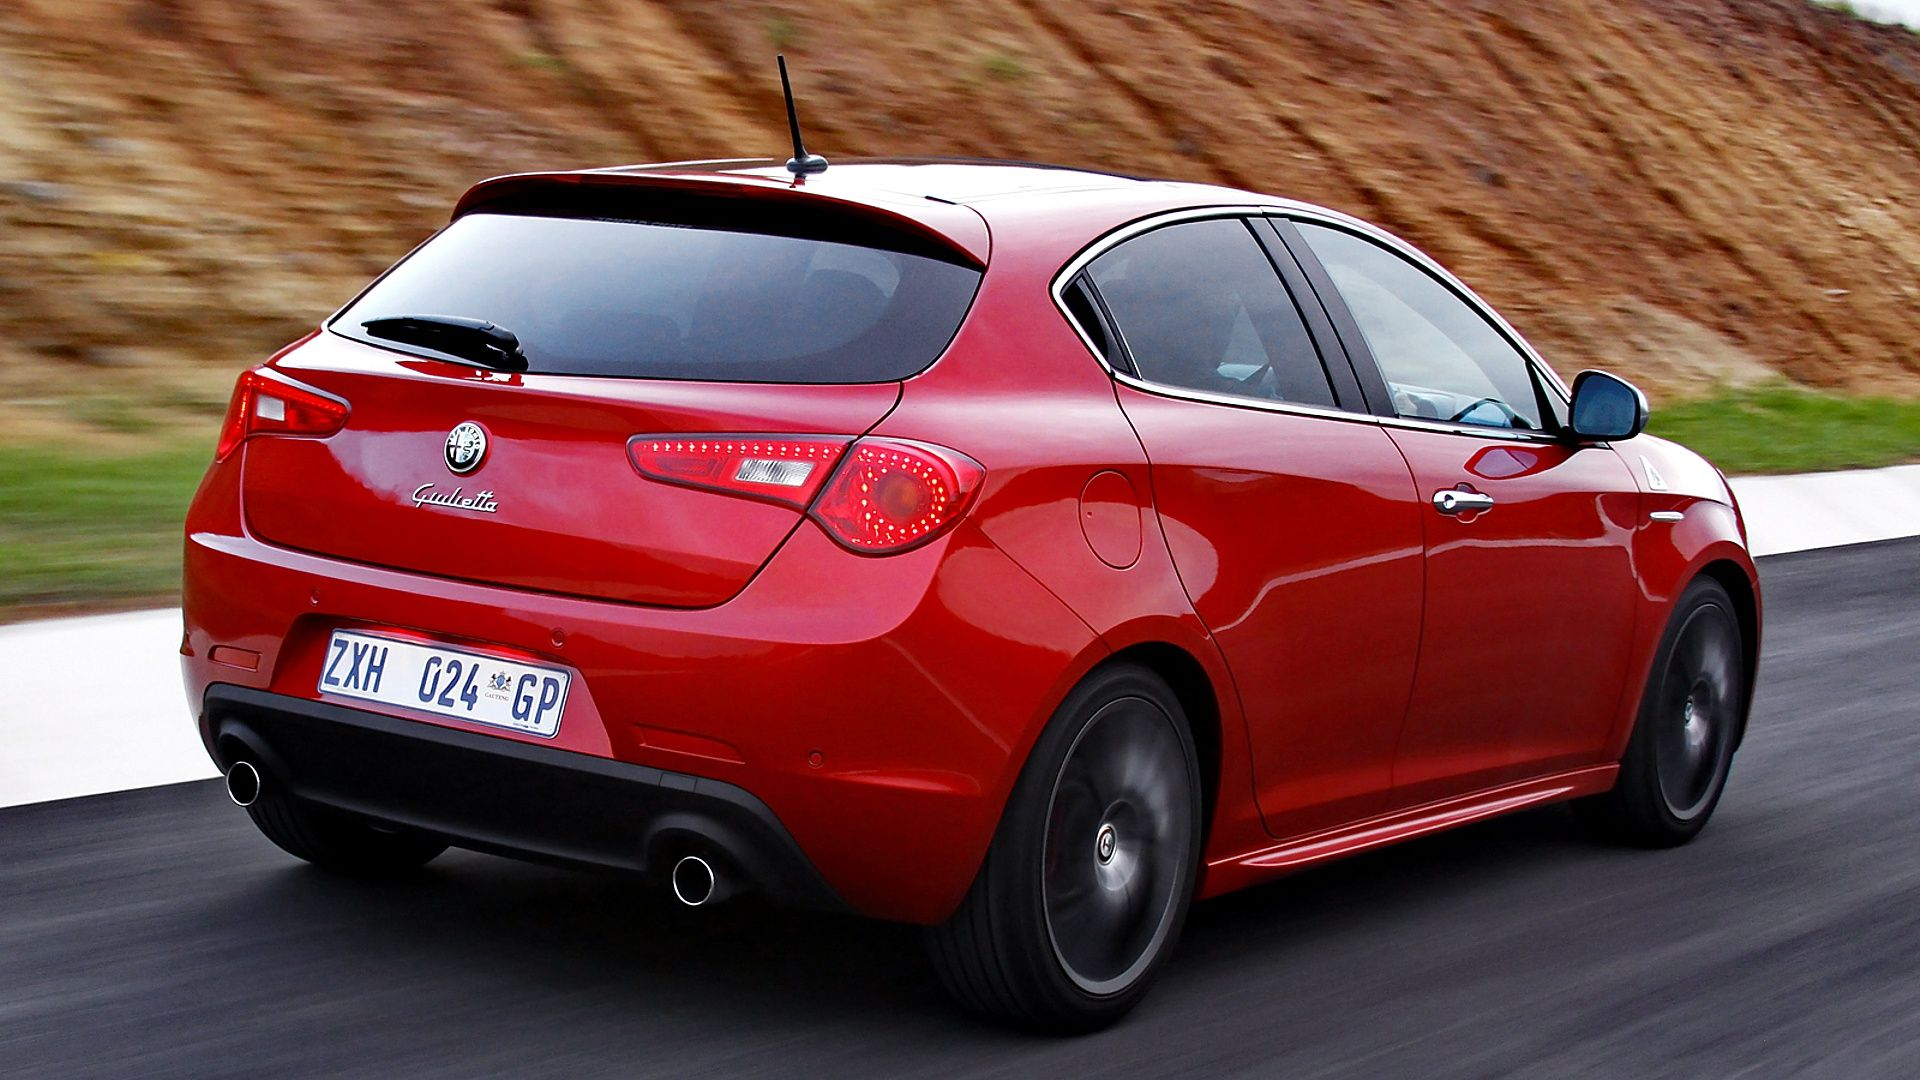 Alfa romeo giulietta quadrifoglio verde in red color hd wallpapers from www